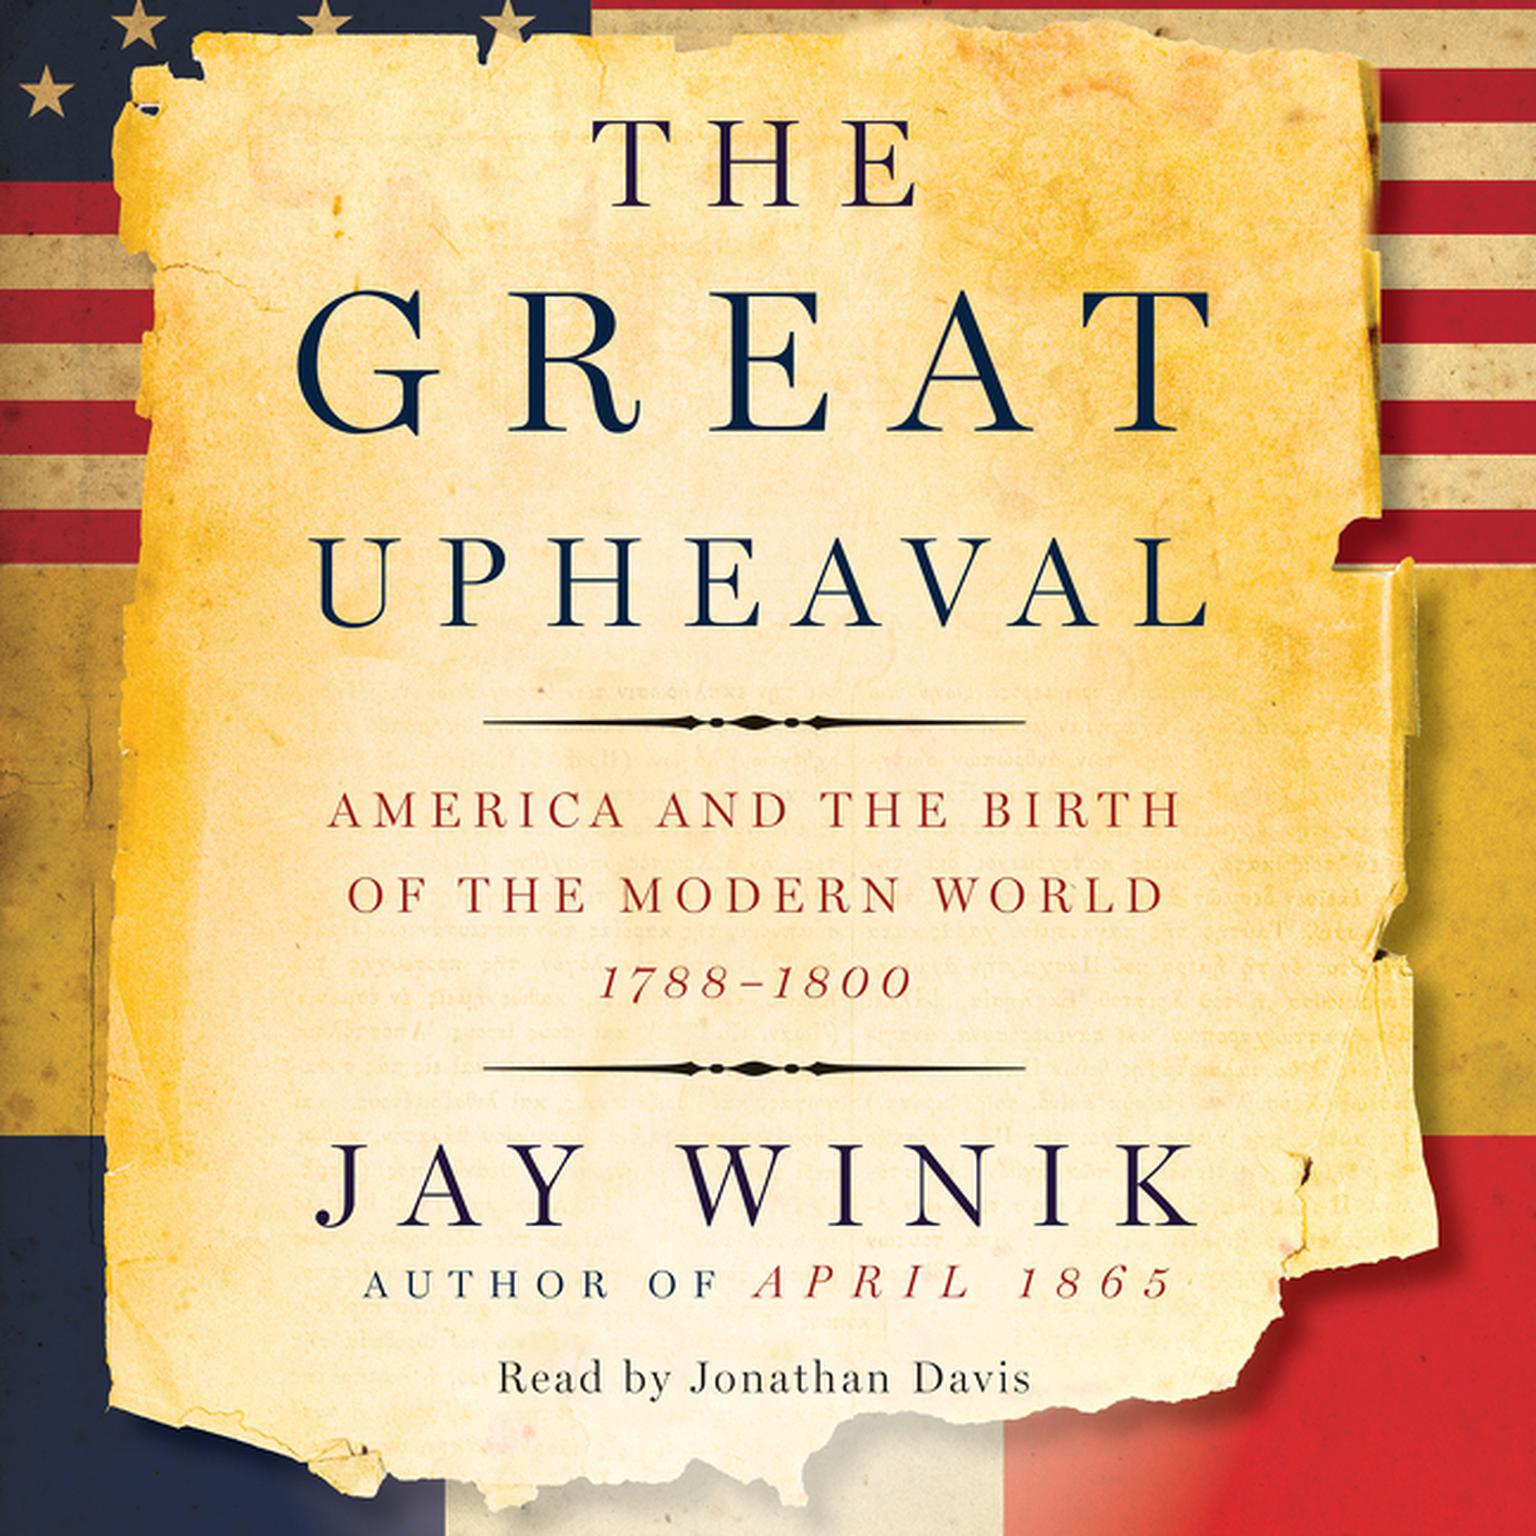 Printable The Great Upheaval: America and the Birth of the Modern World, 1788-1800 Audiobook Cover Art